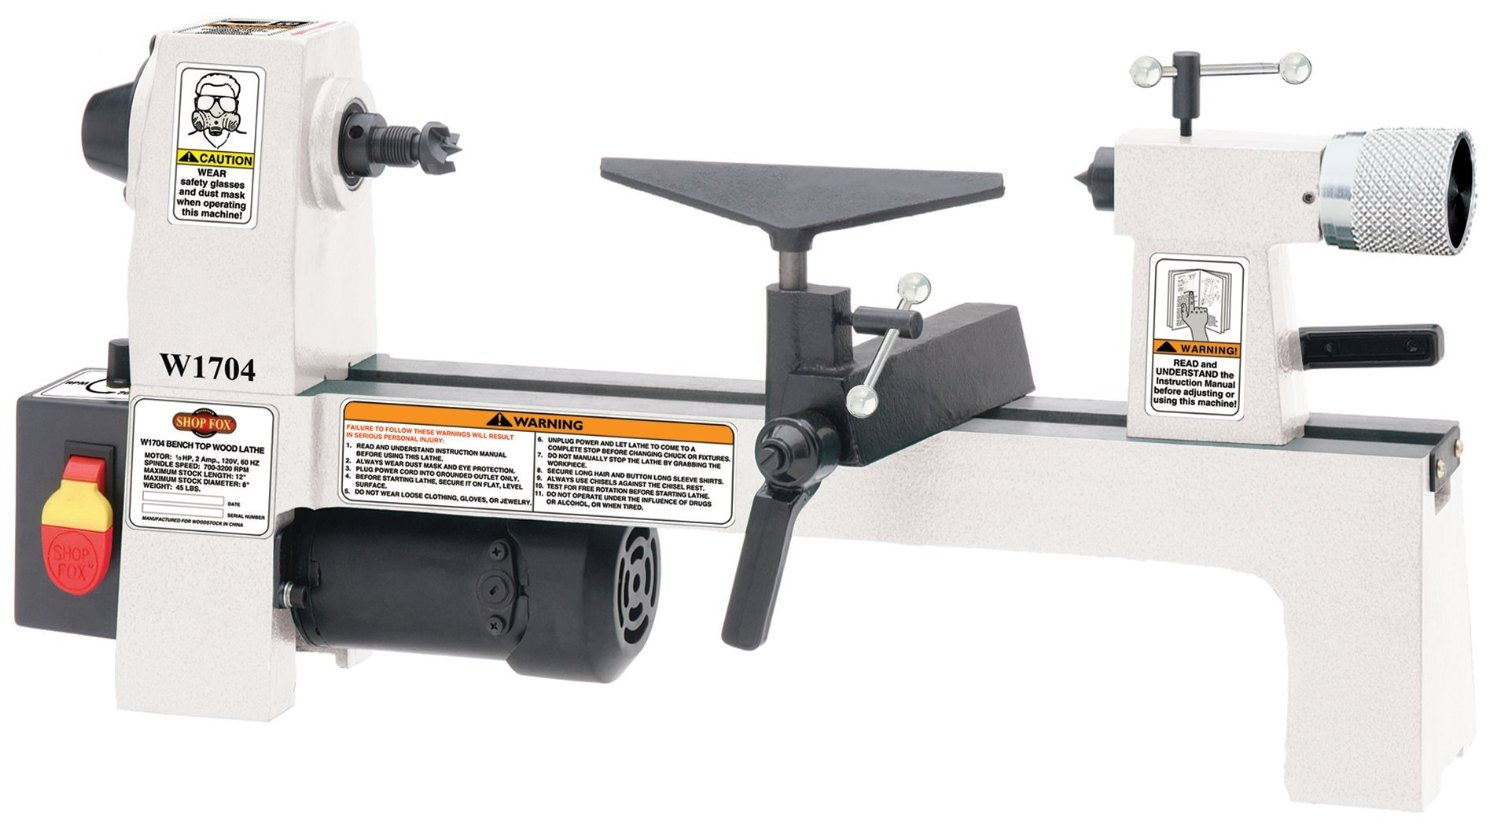 Shop Fox W1704 Review The Basic Woodworking